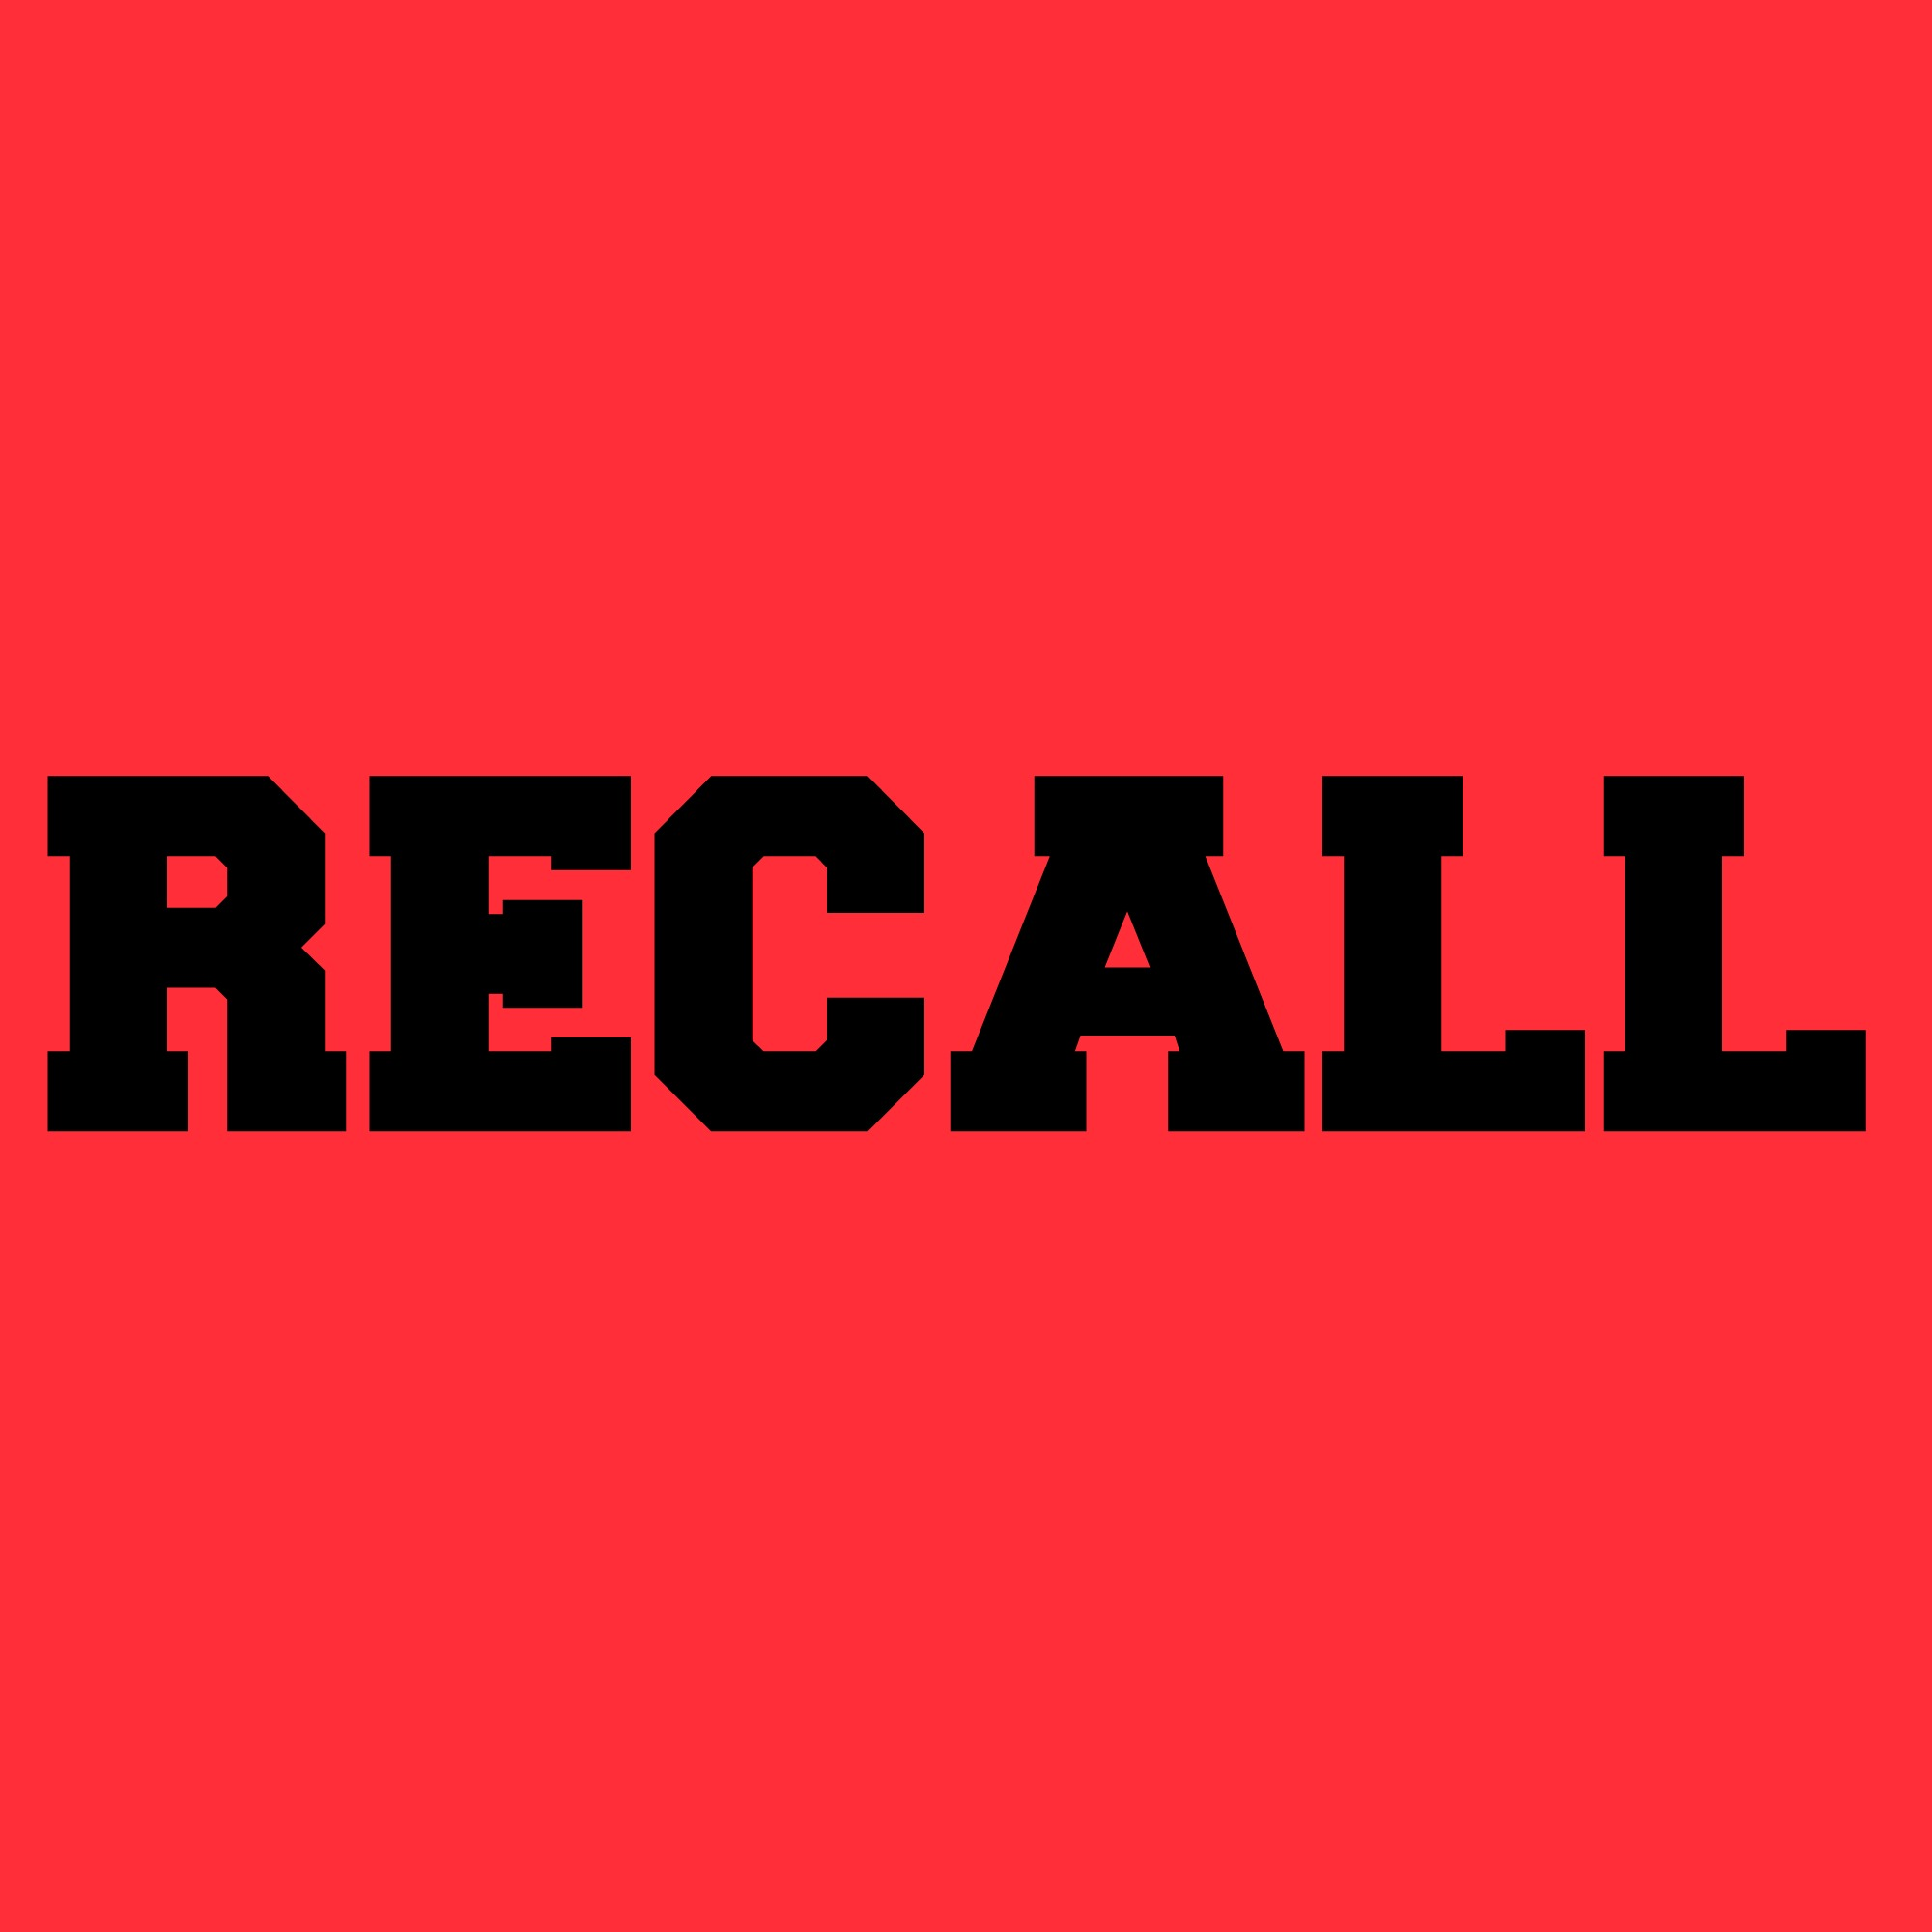 Antibiotic recall: Lupin pulls ceftriaxone; particulate matter found in reconstituted vials - Outbreak News Today